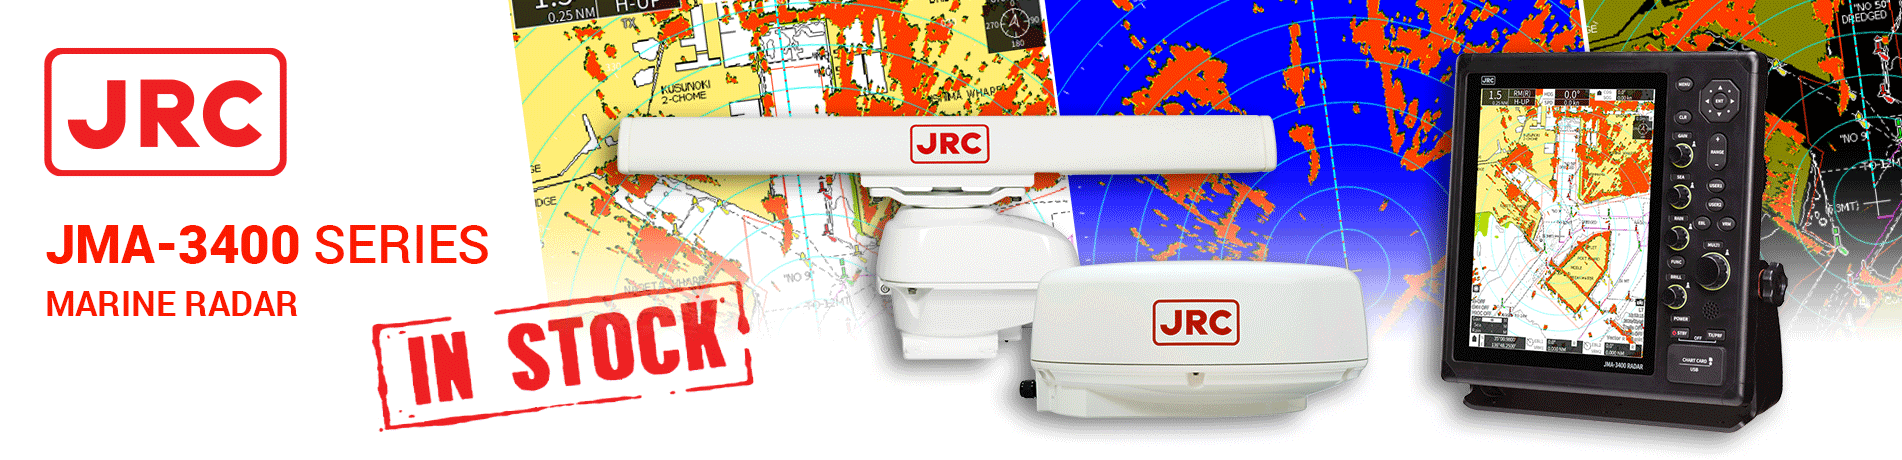 /images/sliders/jrc3400-slider-tmq